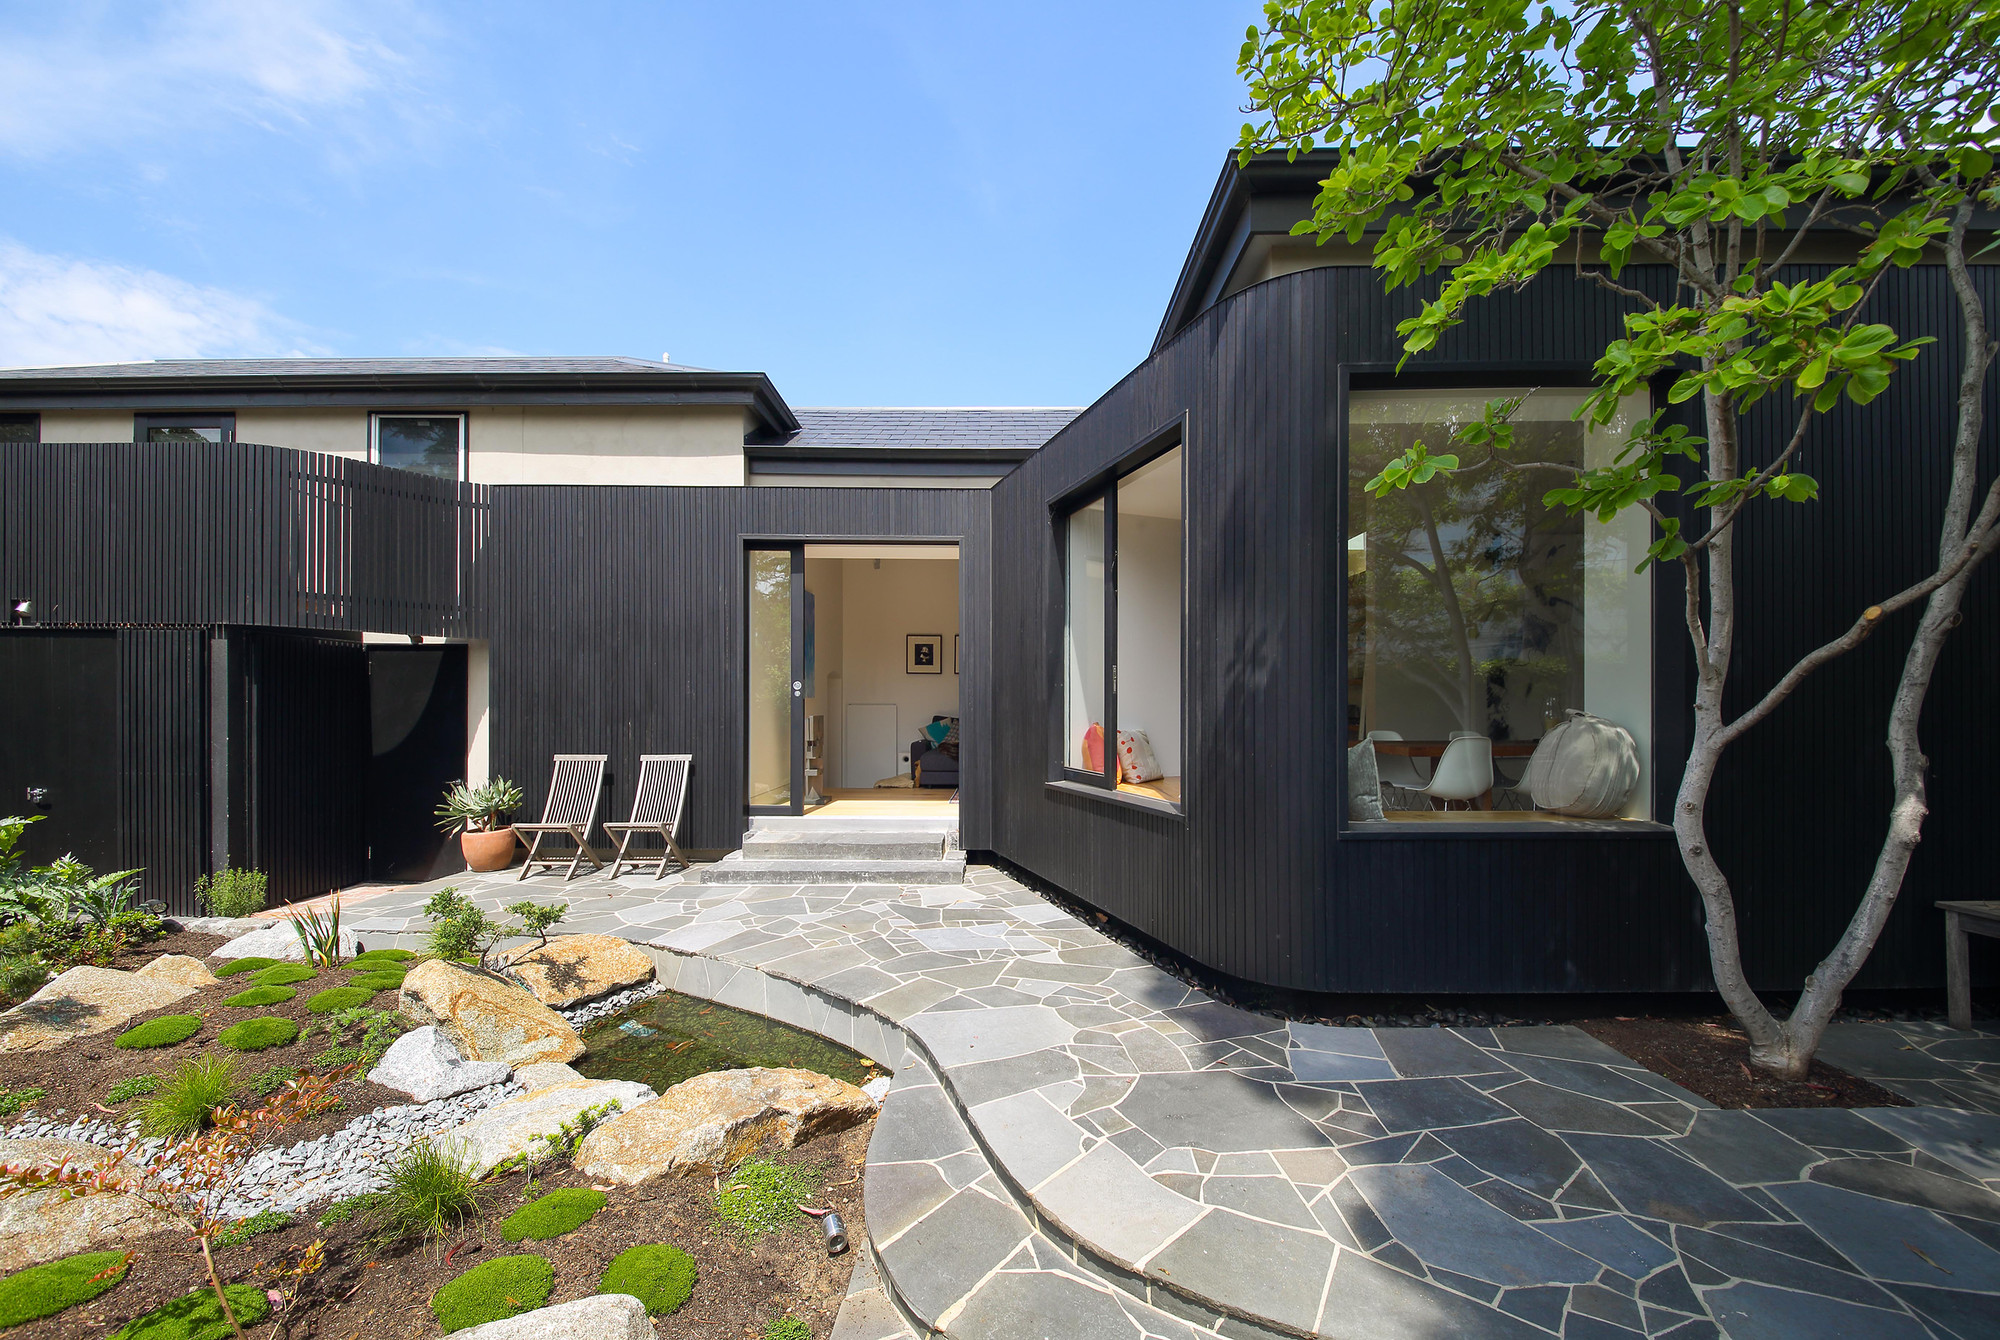 Casa Merton / Thomas Winwood Architecture + Kontista+Co, © Emily Bartlett